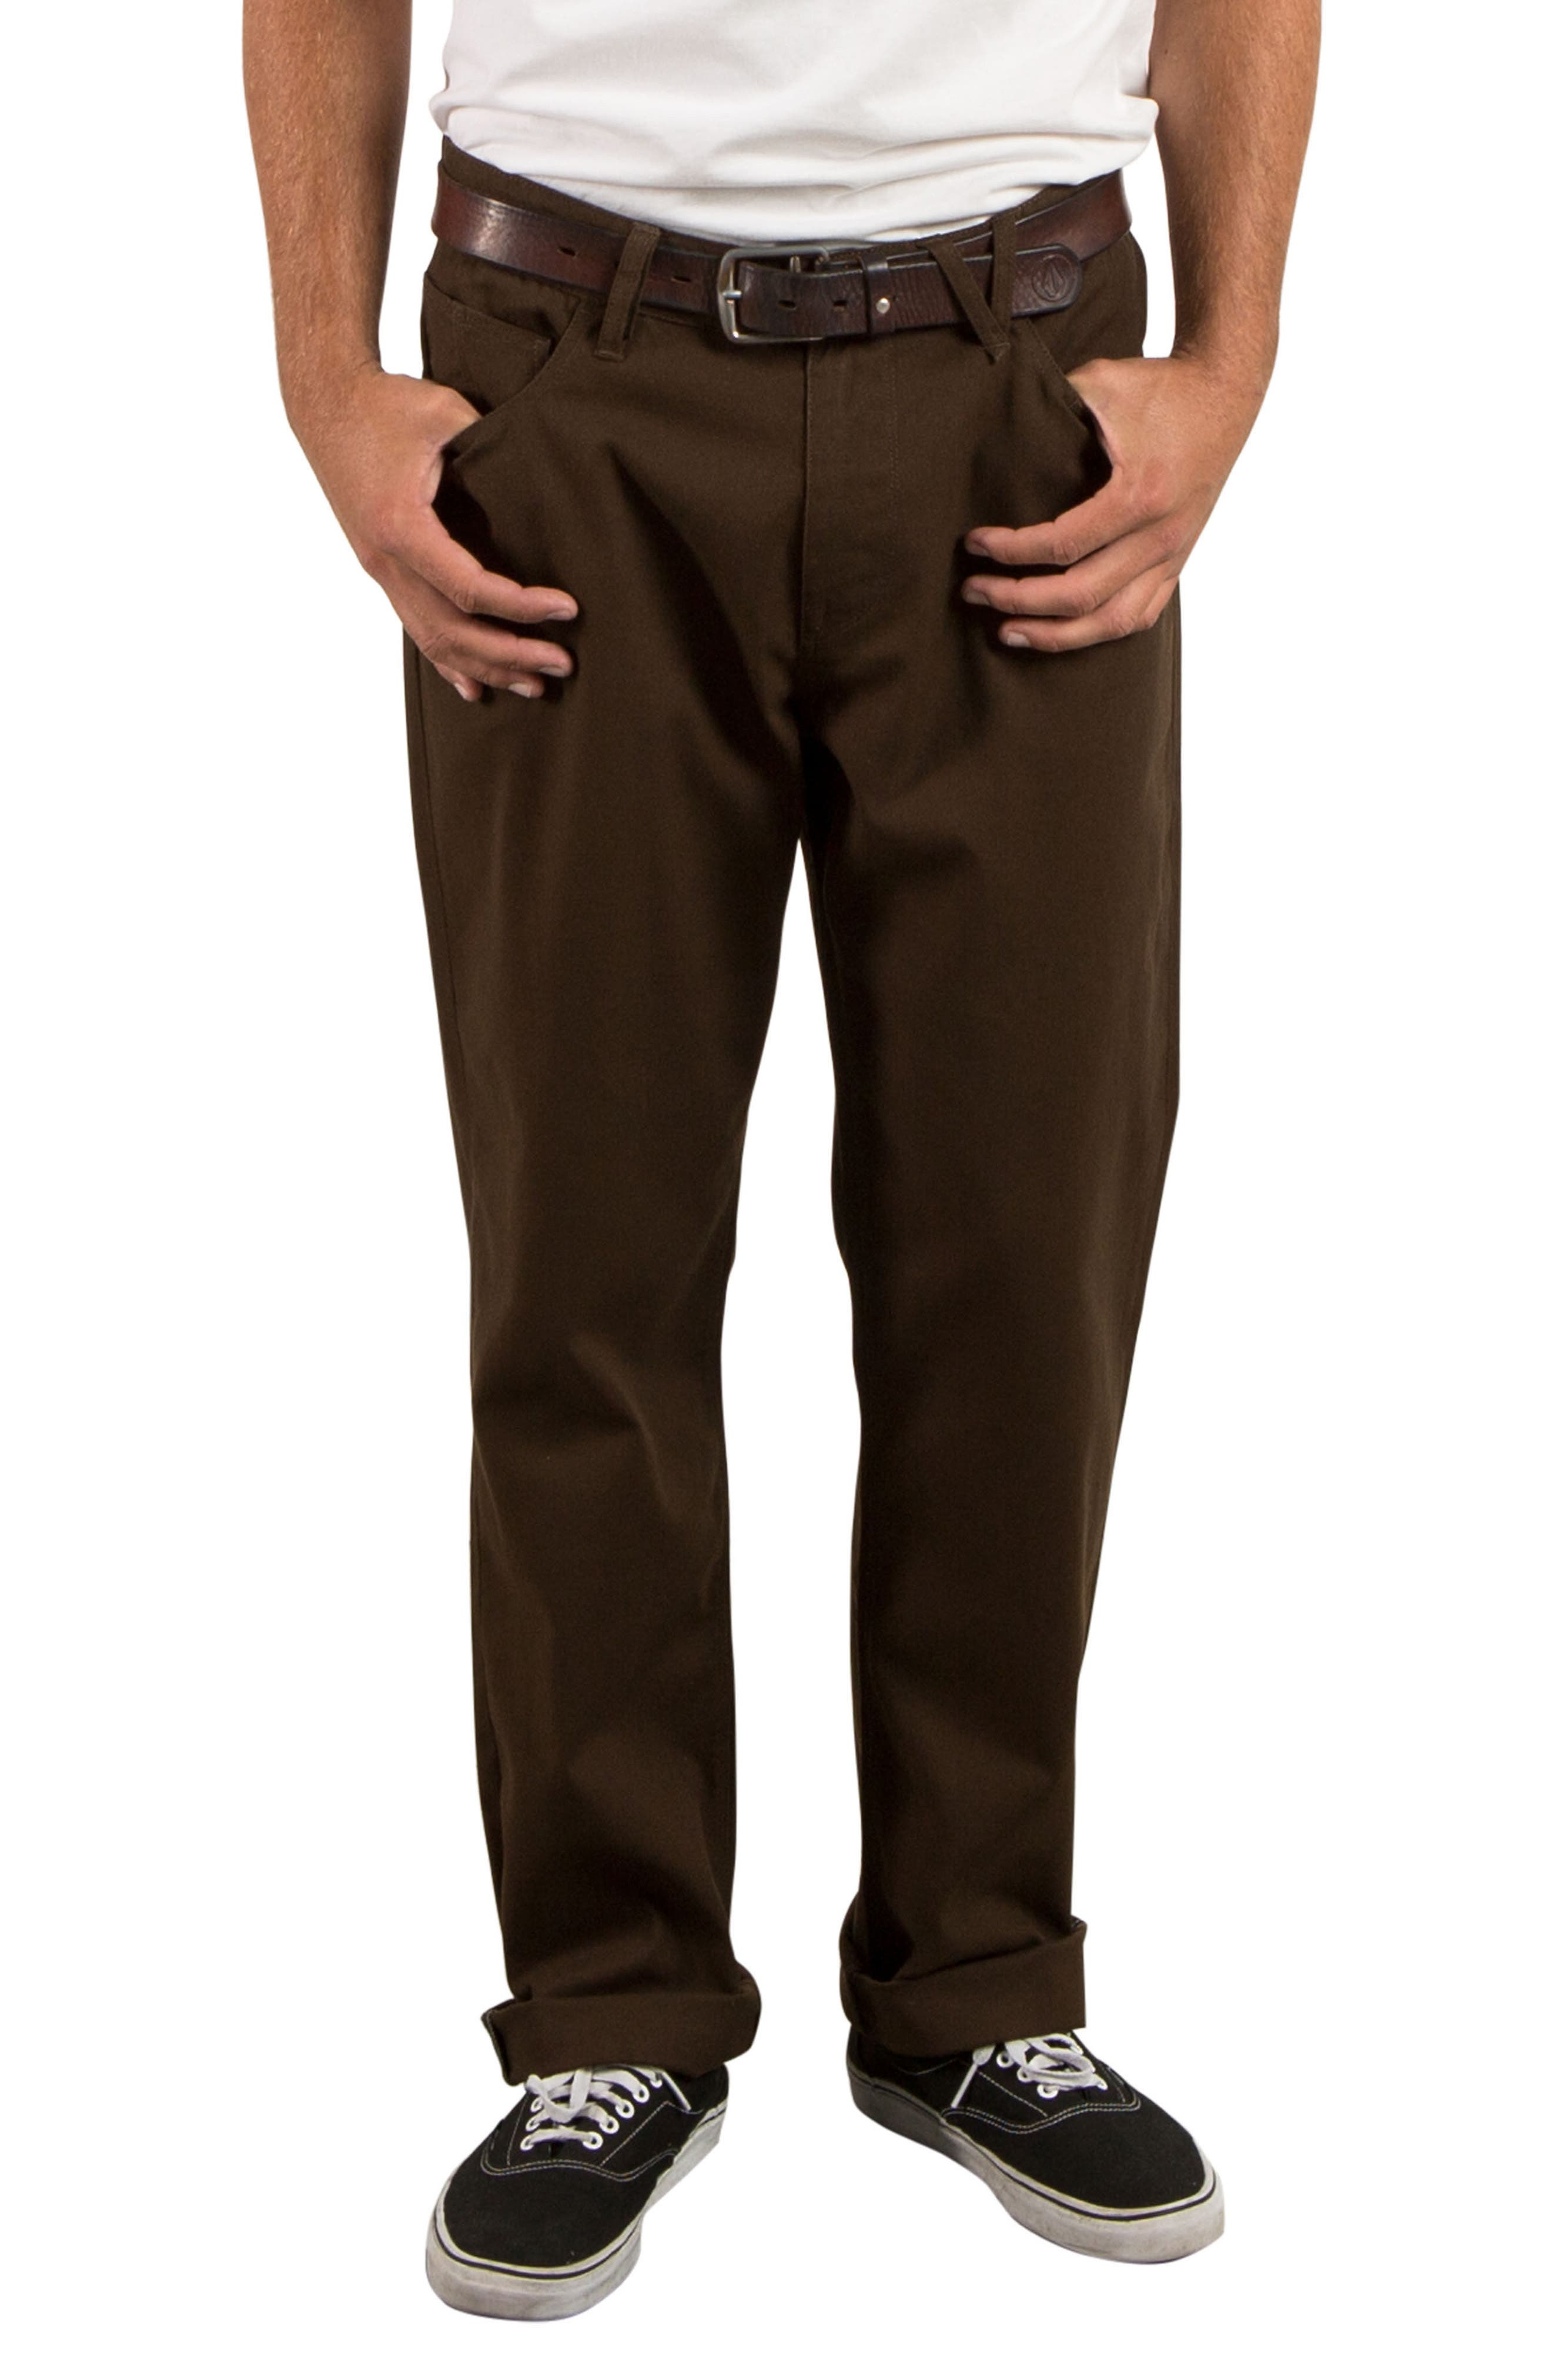 Kinkade Five-Pocket Thrifter Pants,                             Main thumbnail 1, color,                             208